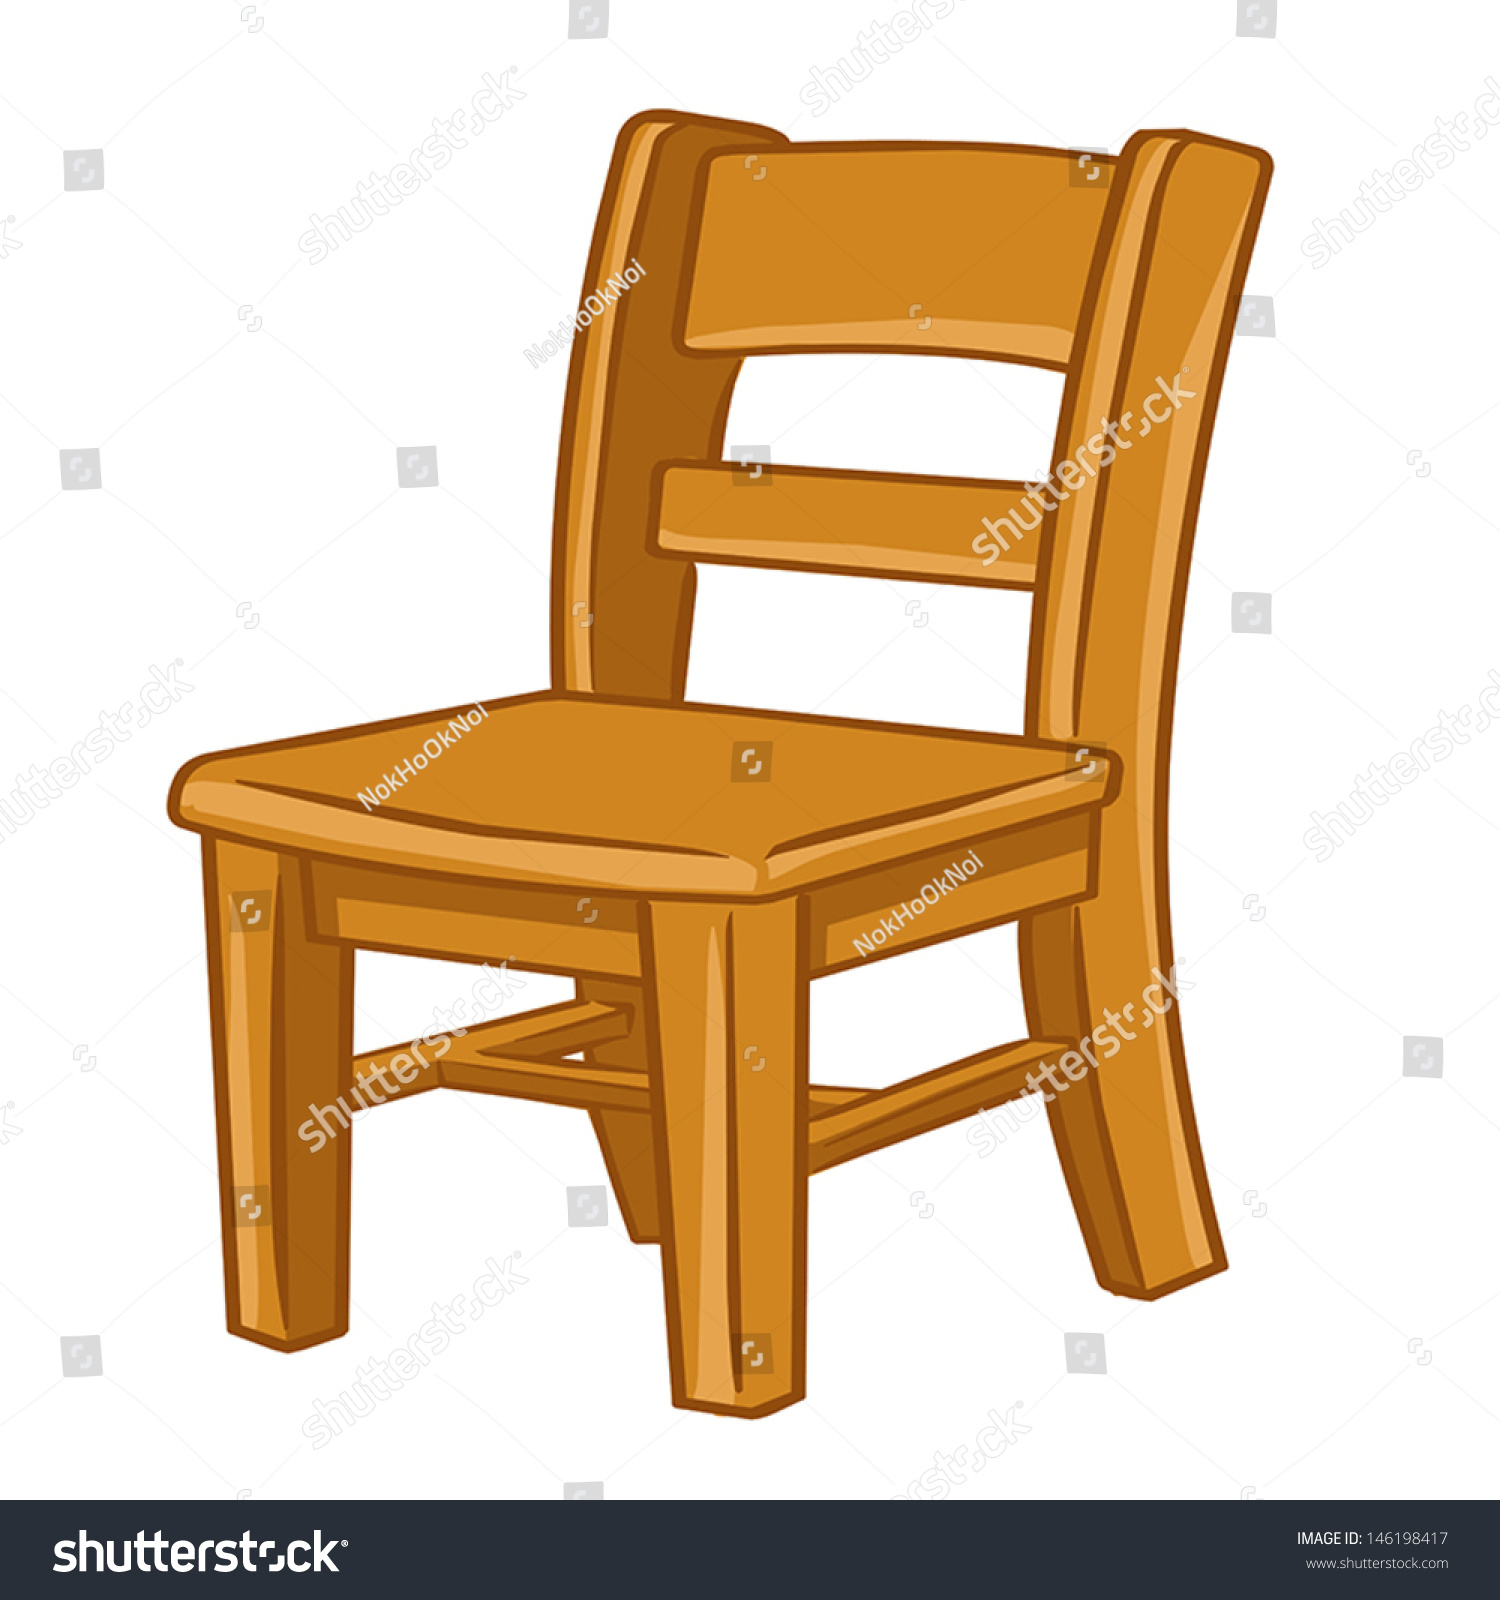 Amazing photo of Wood Chair Isolated Illustration On White Background 146198417  with #8B4608 color and 1500x1600 pixels